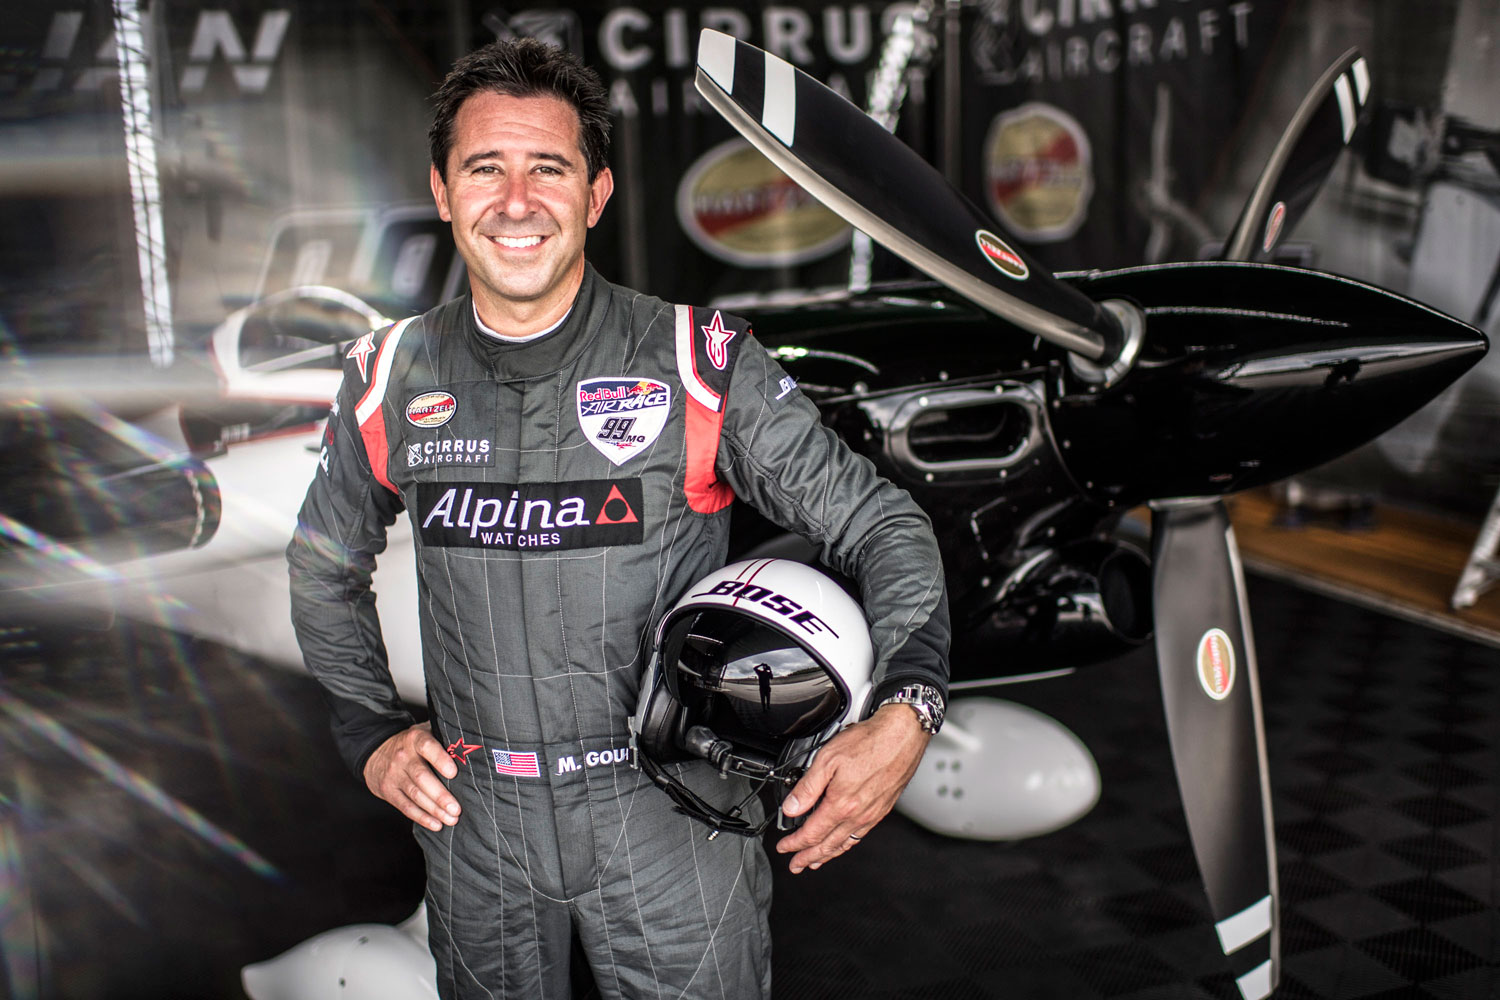 Michael Goulian to Make Russian Debut Alongside Team Partner Alpina 4